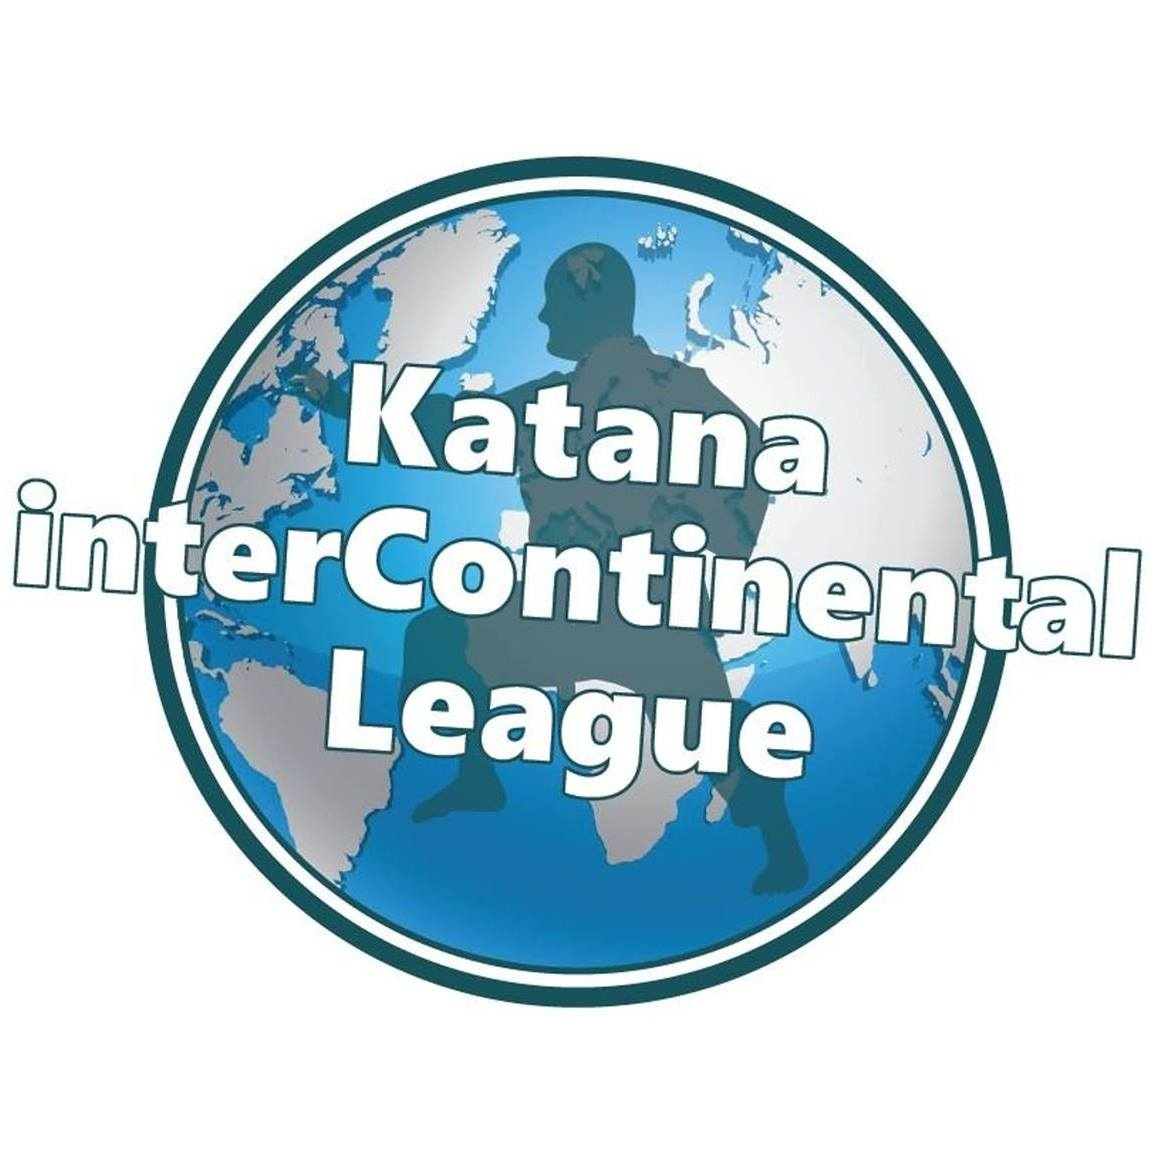 Katana InterContinental League!